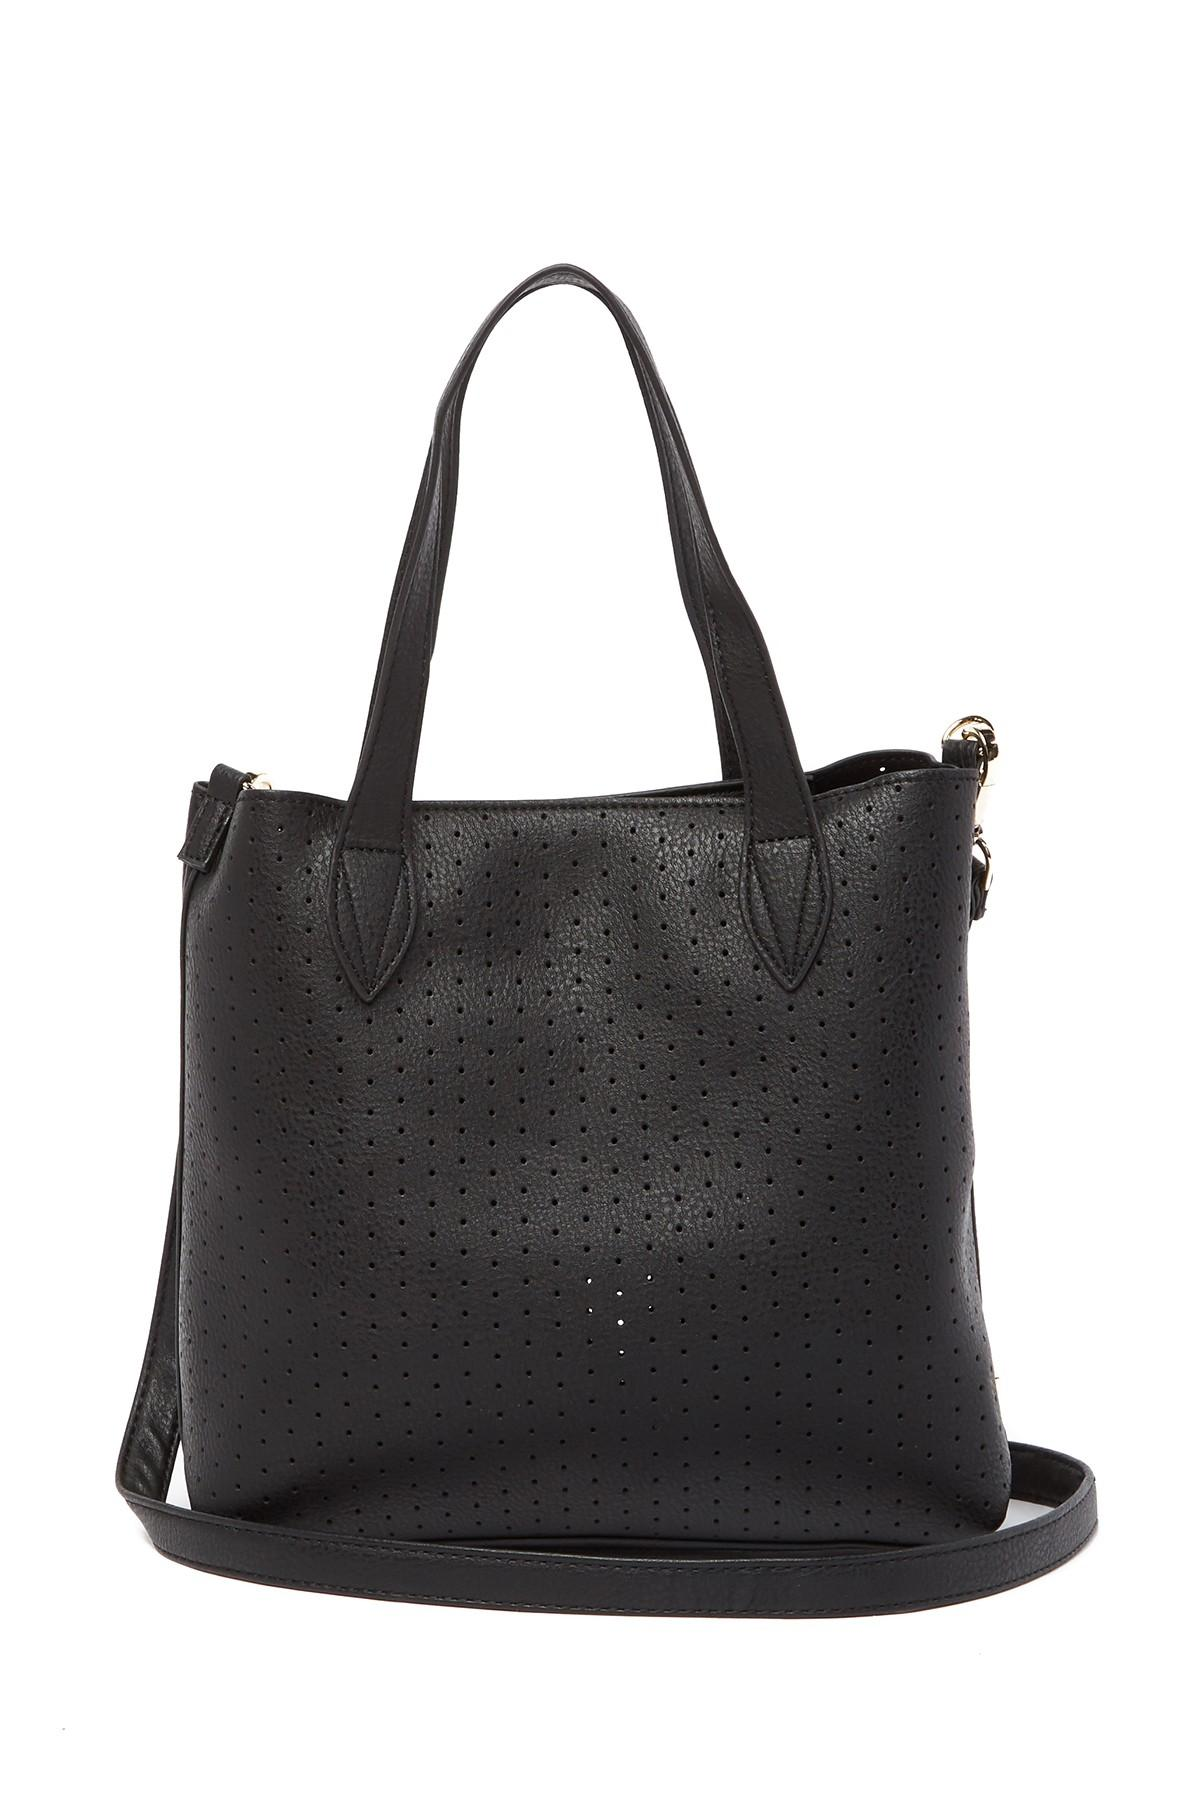 bb7dd96e658c Steve Madden Cassie Perforated Crossbody Bag in Black - Lyst